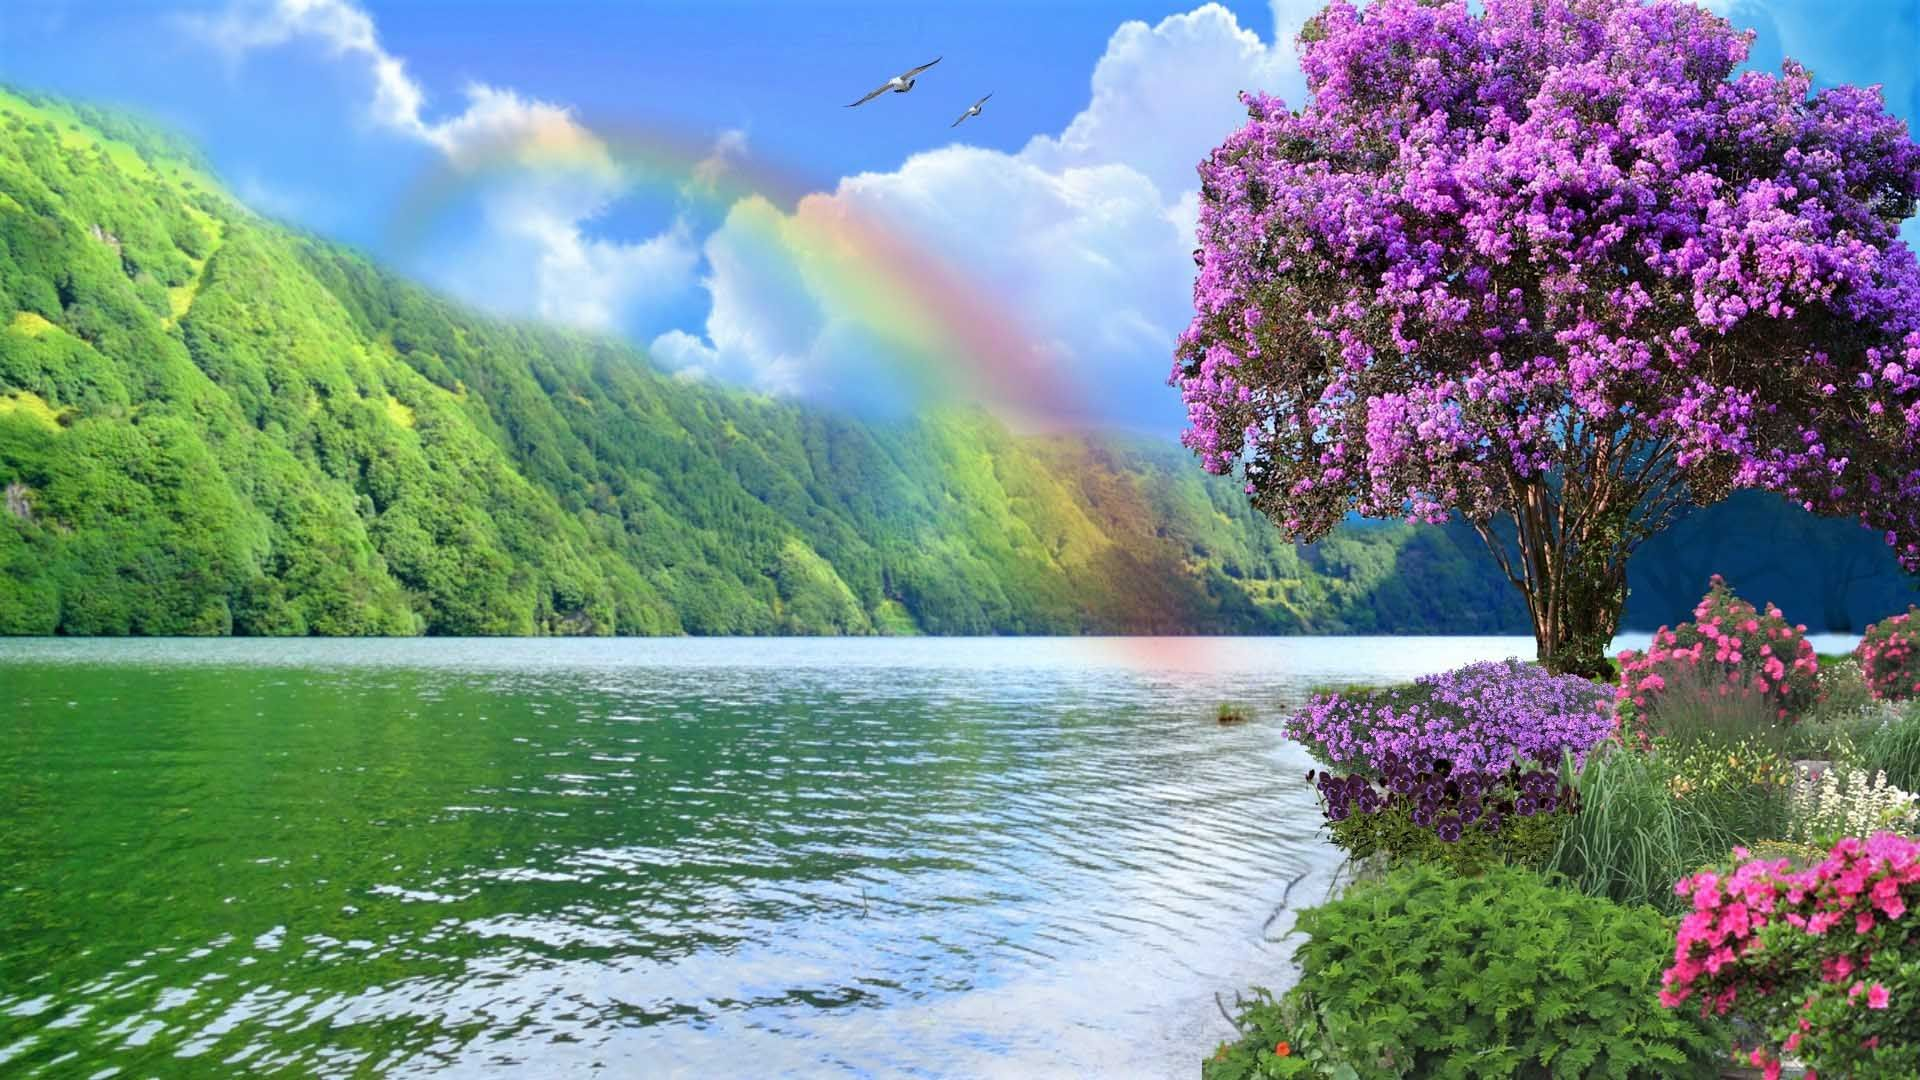 Rainbow Rainbow Photography Flowers Nature Rainbow Wallpaper